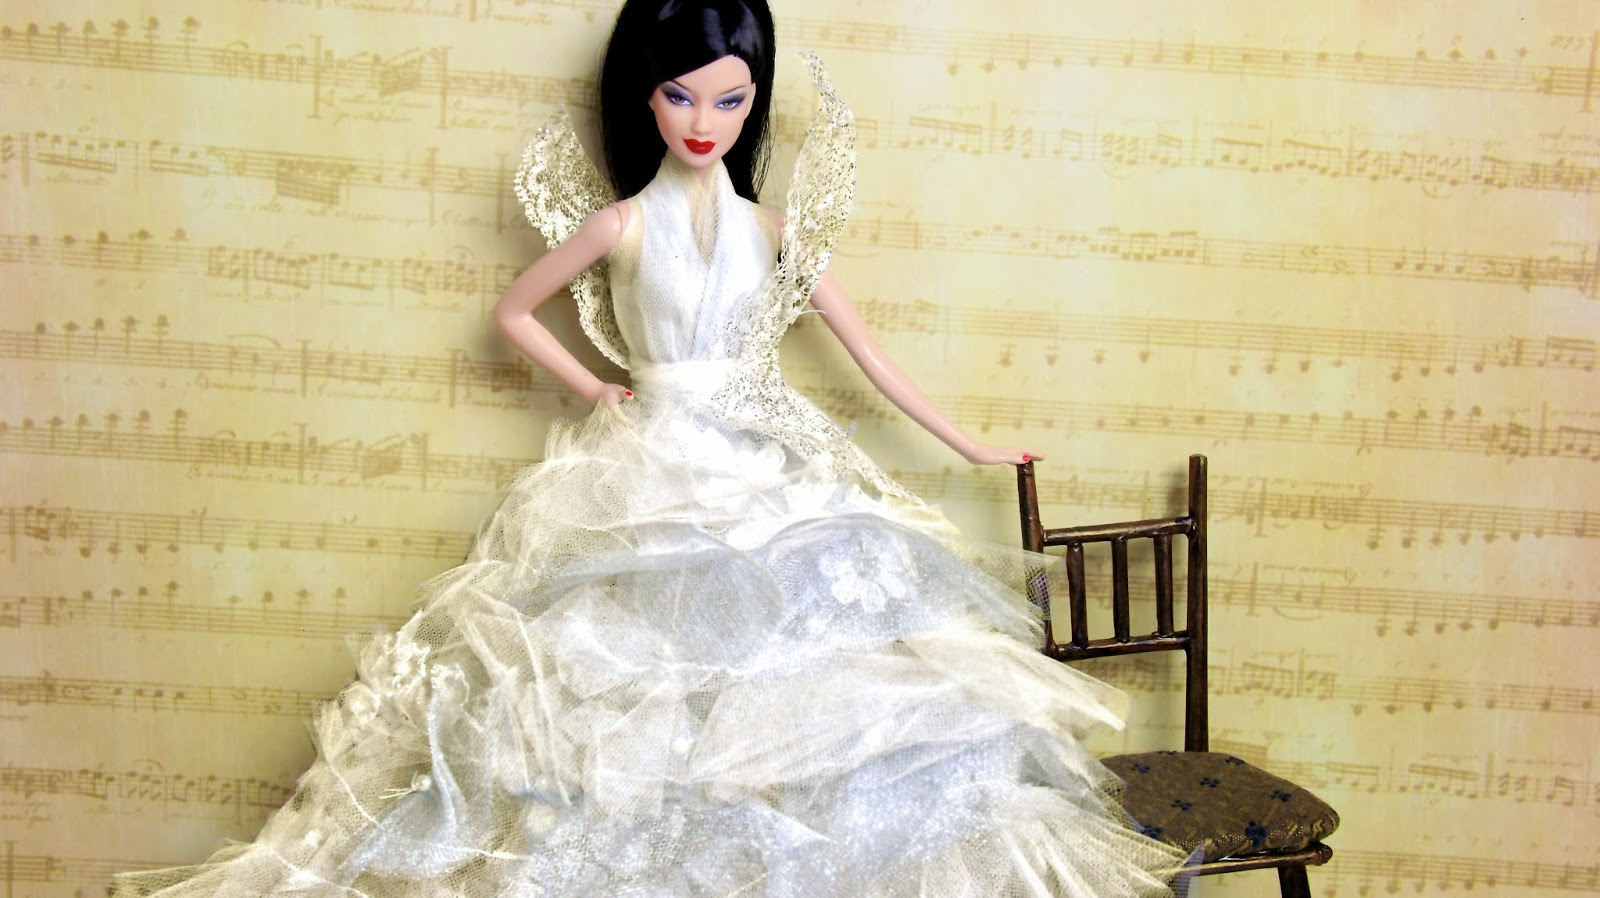 My froggy stuff stunning easy to make doll dresses for almost any stunning easy to make doll dresses for almost any size doll ccuart Choice Image